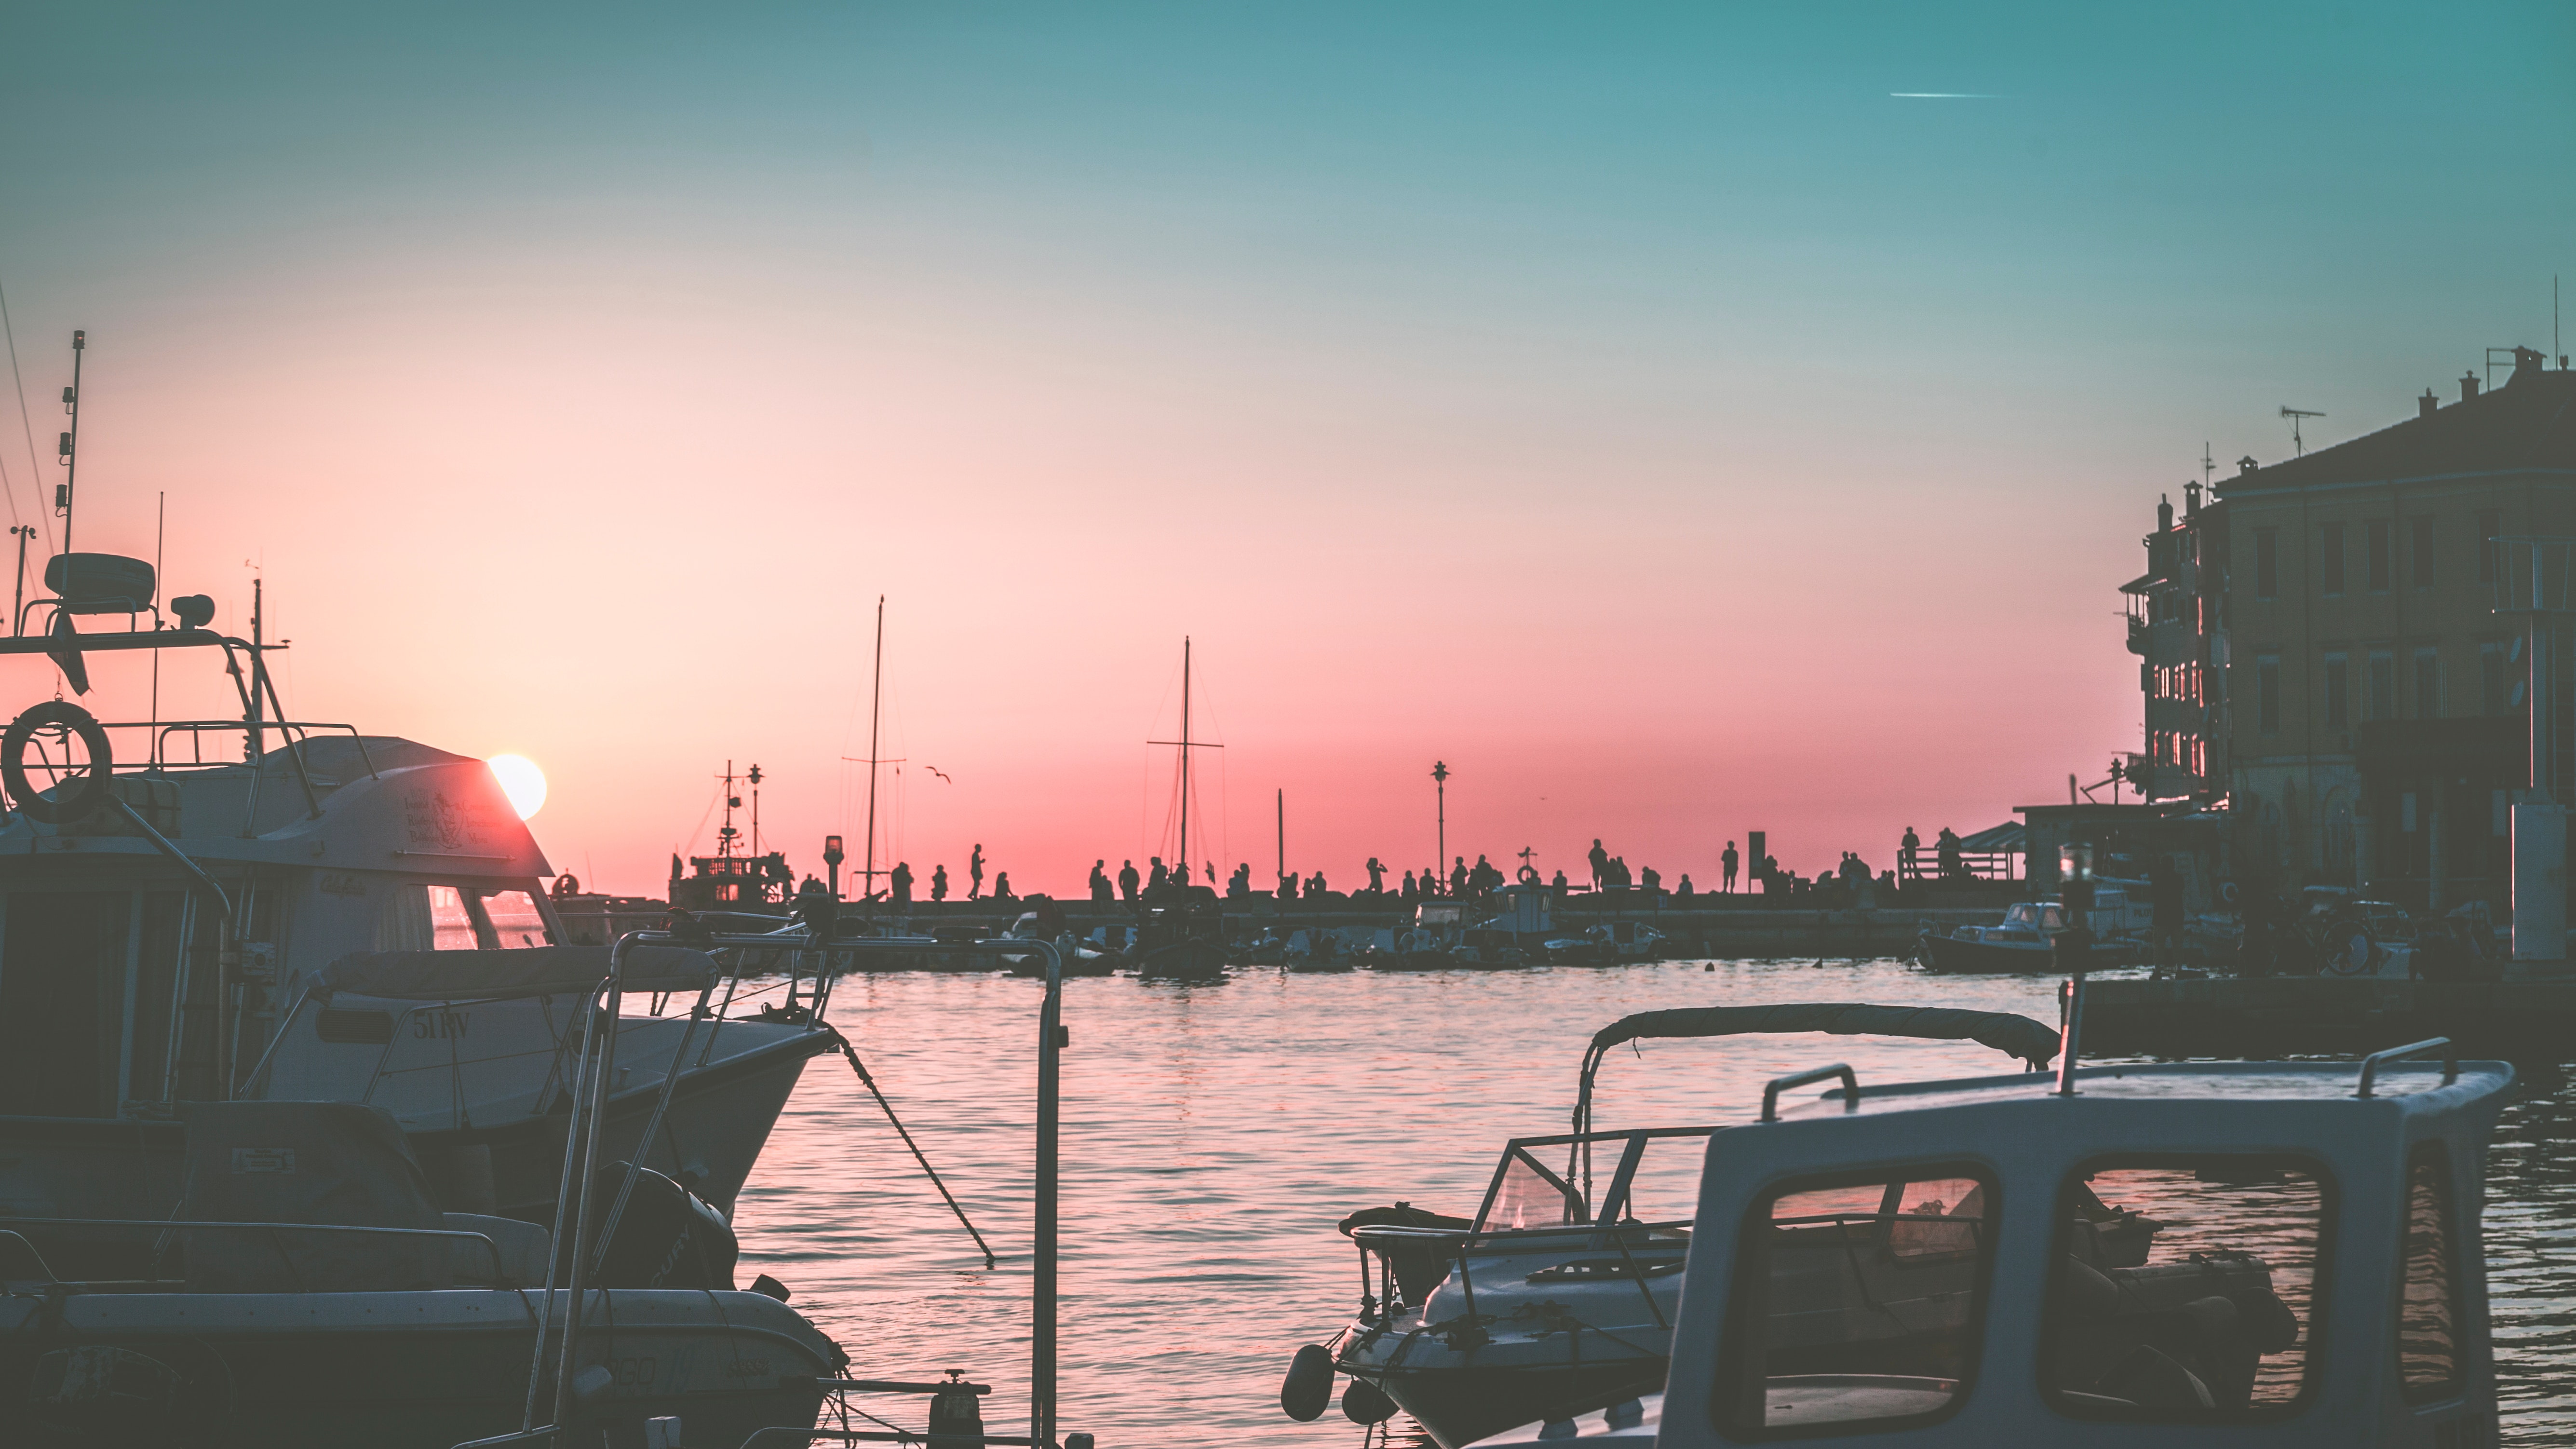 White Yacht on Body of Water during Sunset, Bay, Sailboat, Watercrafts, Water, HQ Photo